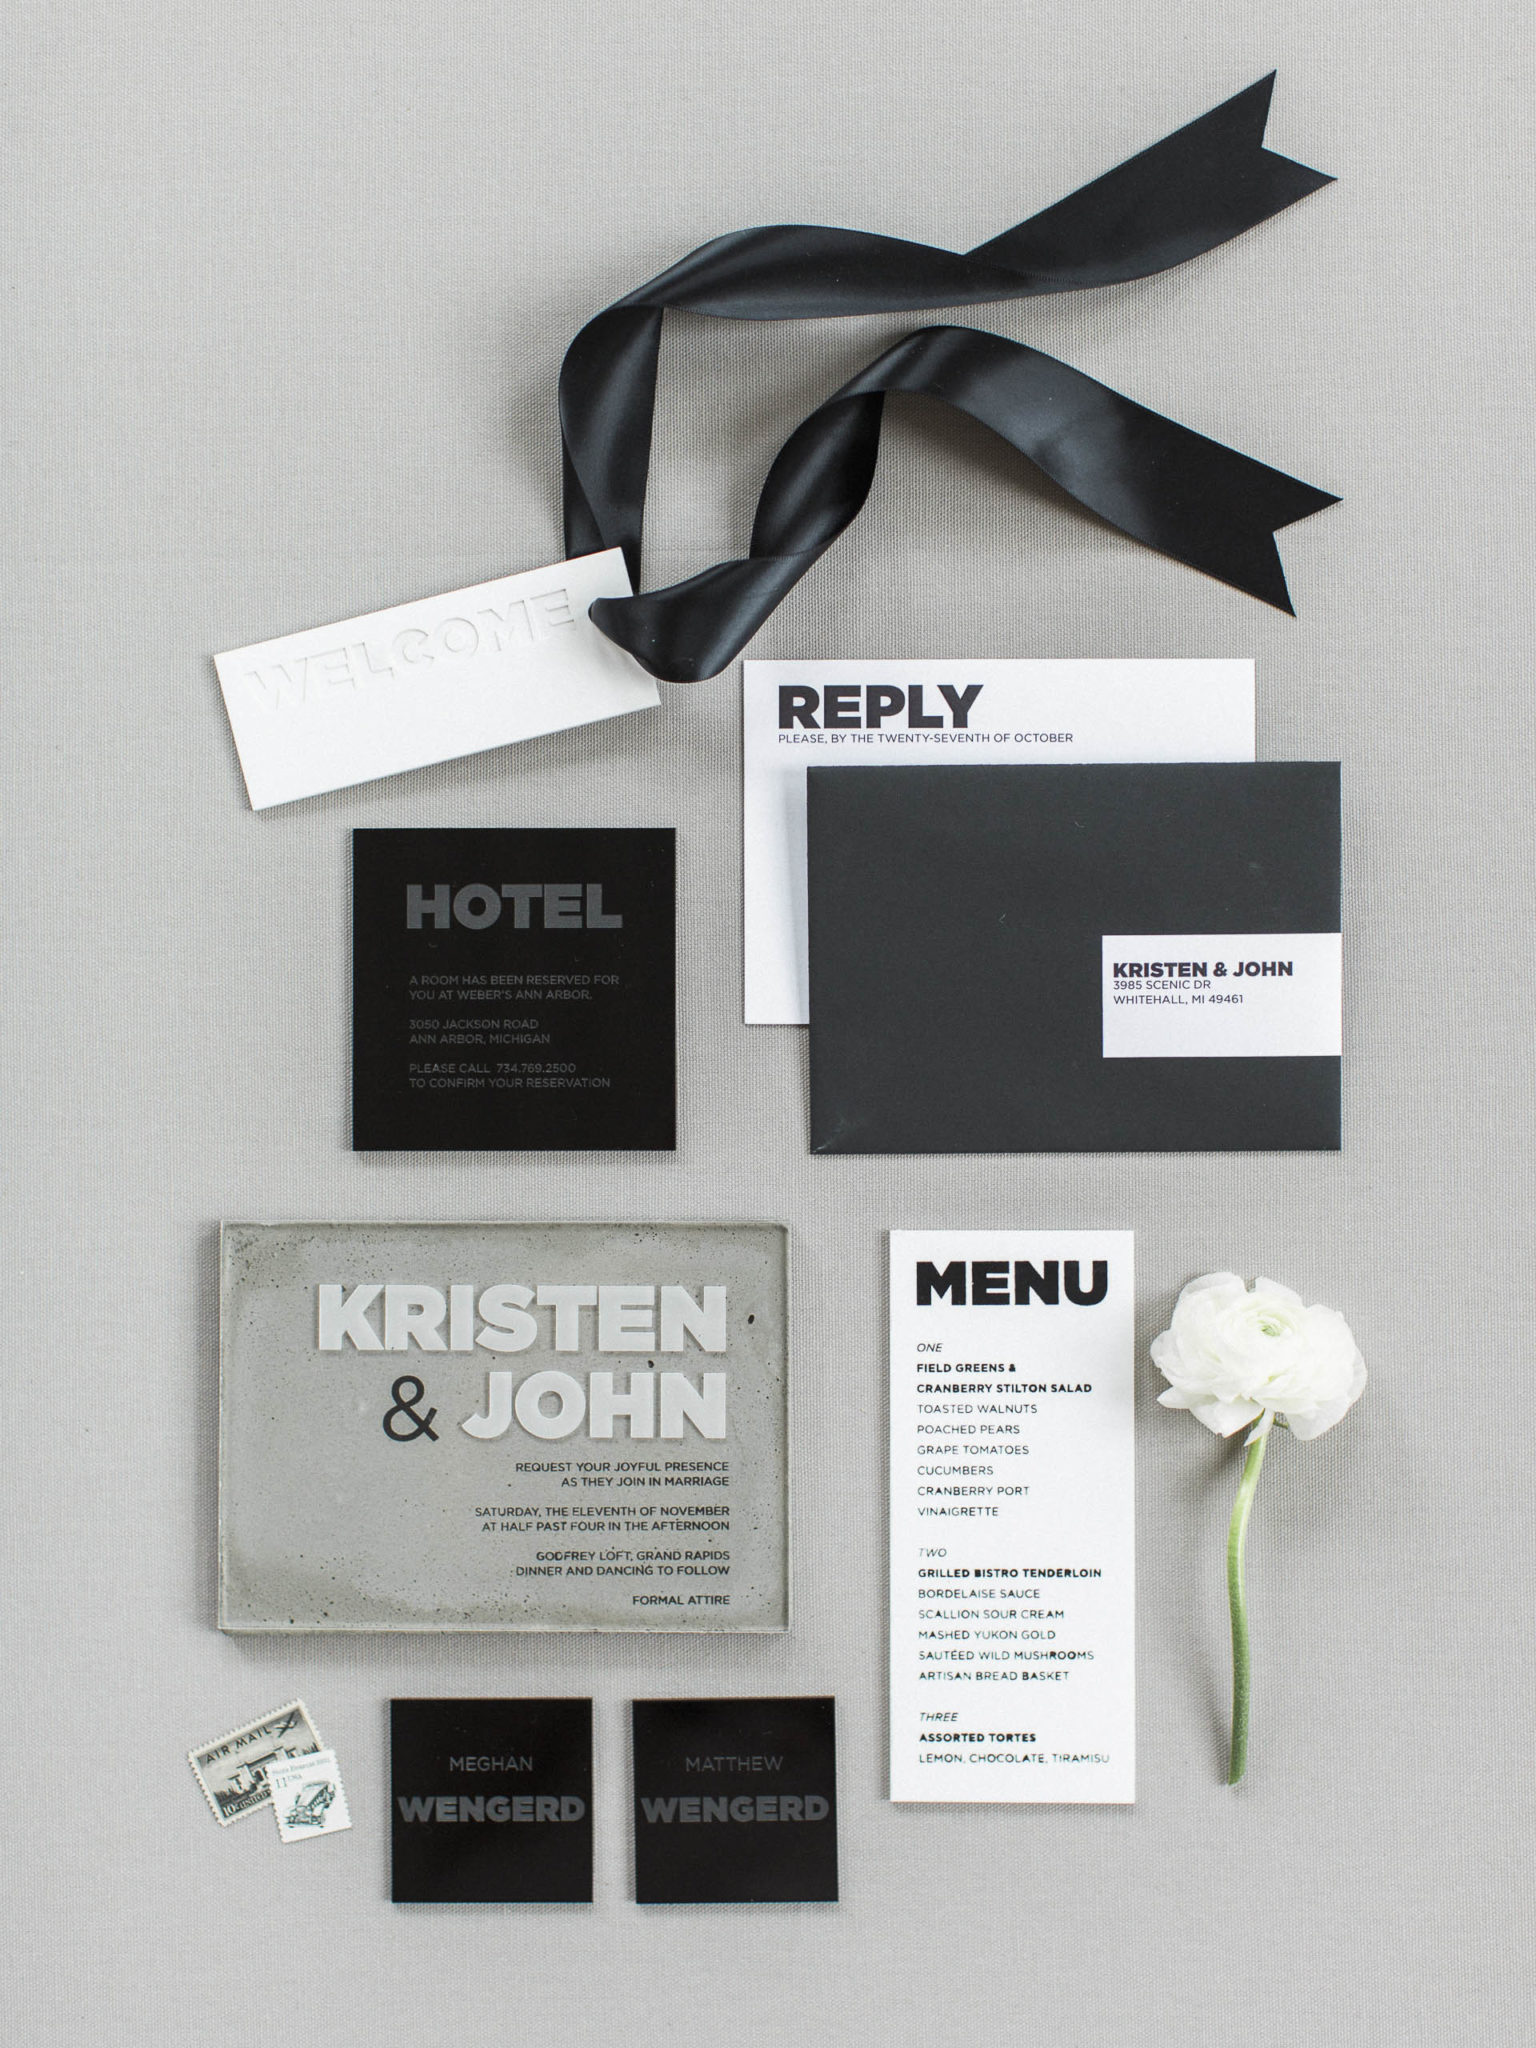 Concrete and Acrylic details, accented by practical paper for the RSVP